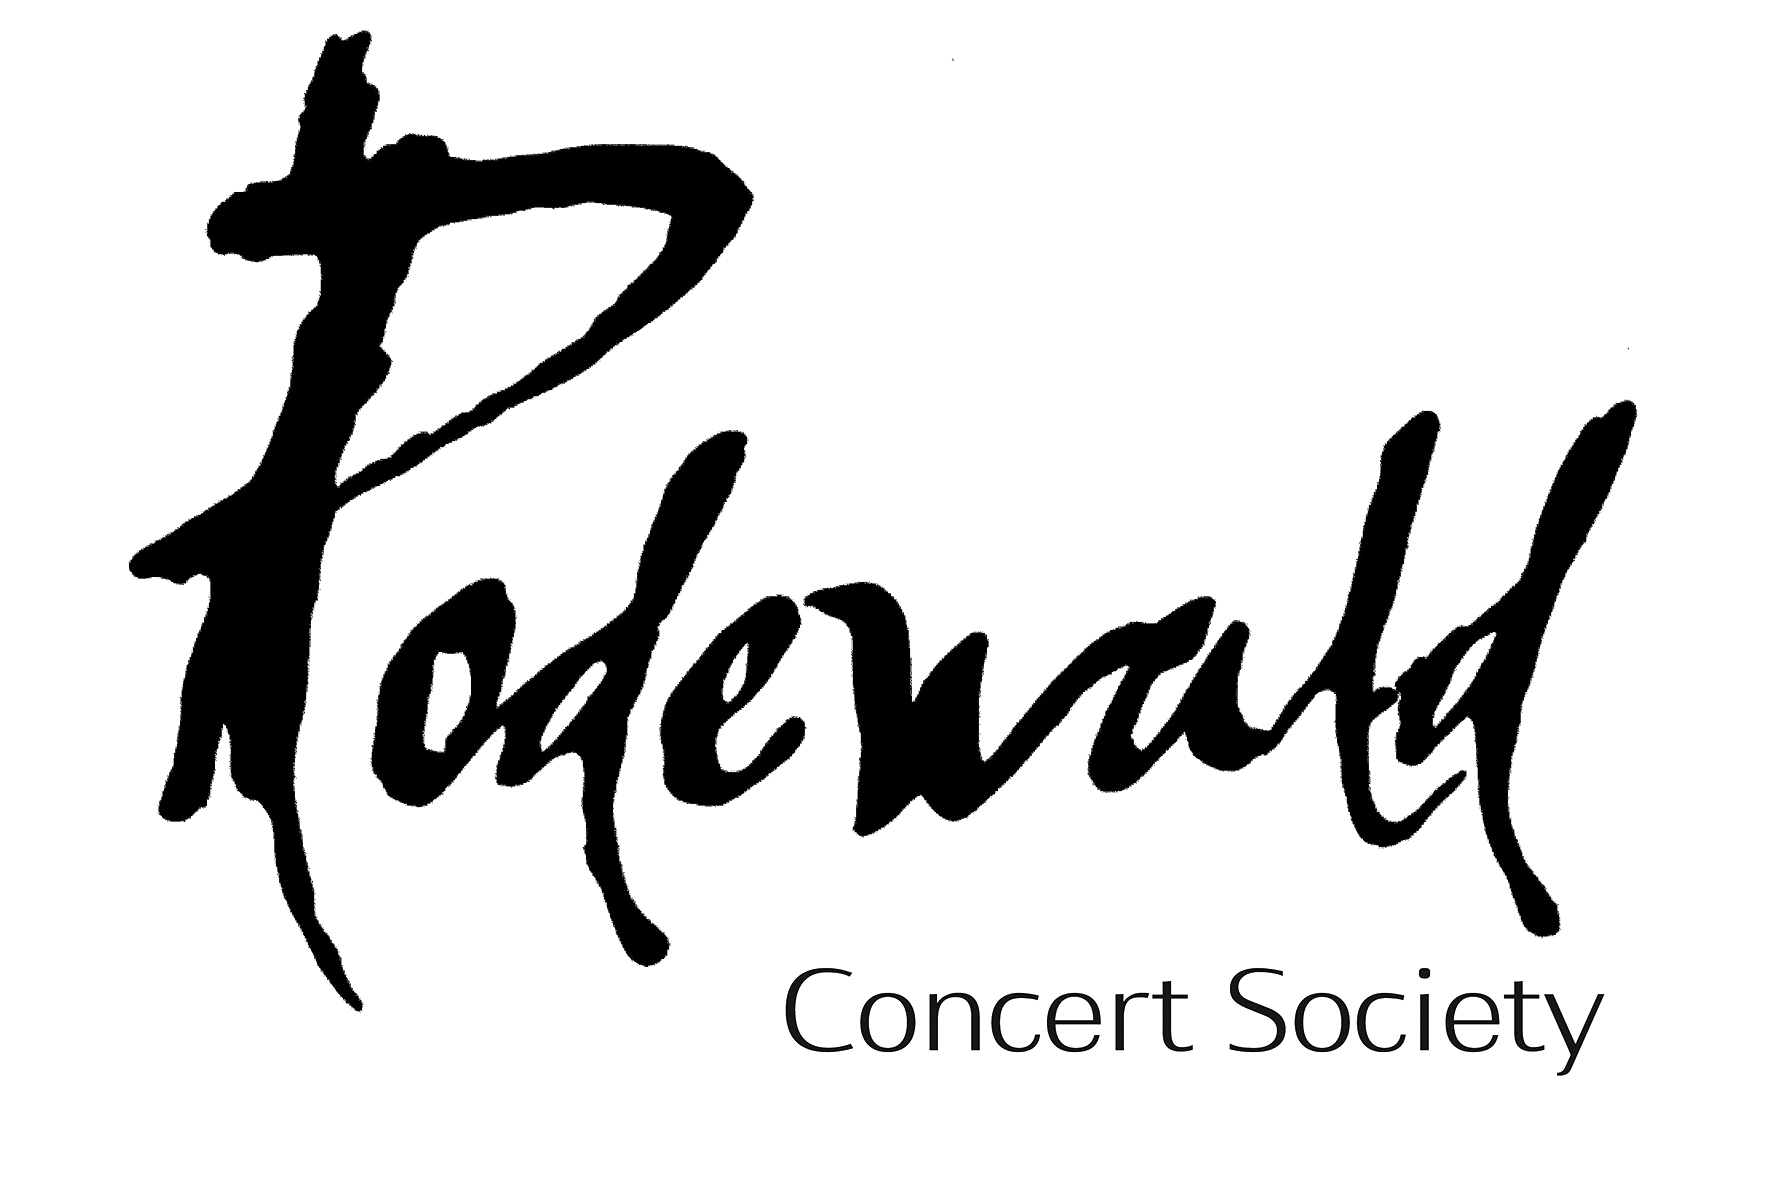 Rodewald Concert Society